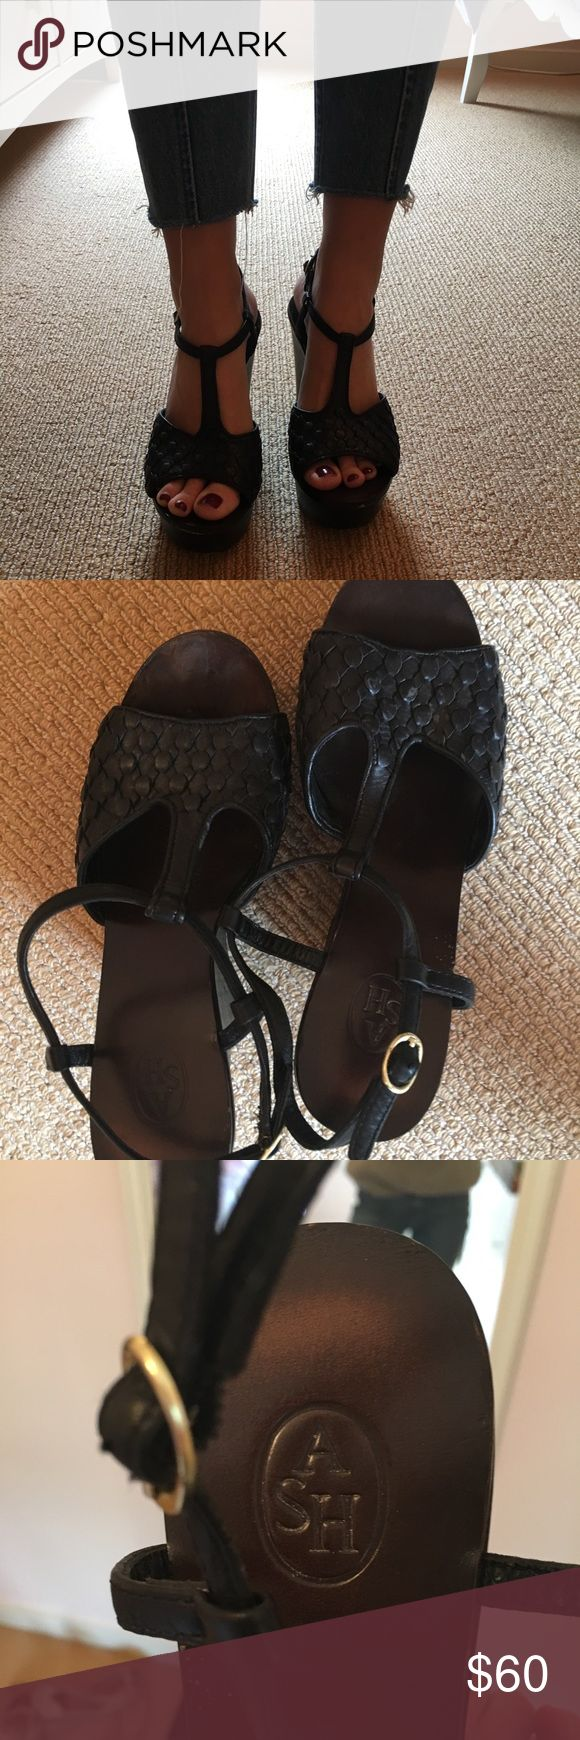 Black wedge sandals from ASH size 7.5 Comfortable platform wedge sandals by ASH, good condition, solid platform and very walkable Ash Shoes Wedges